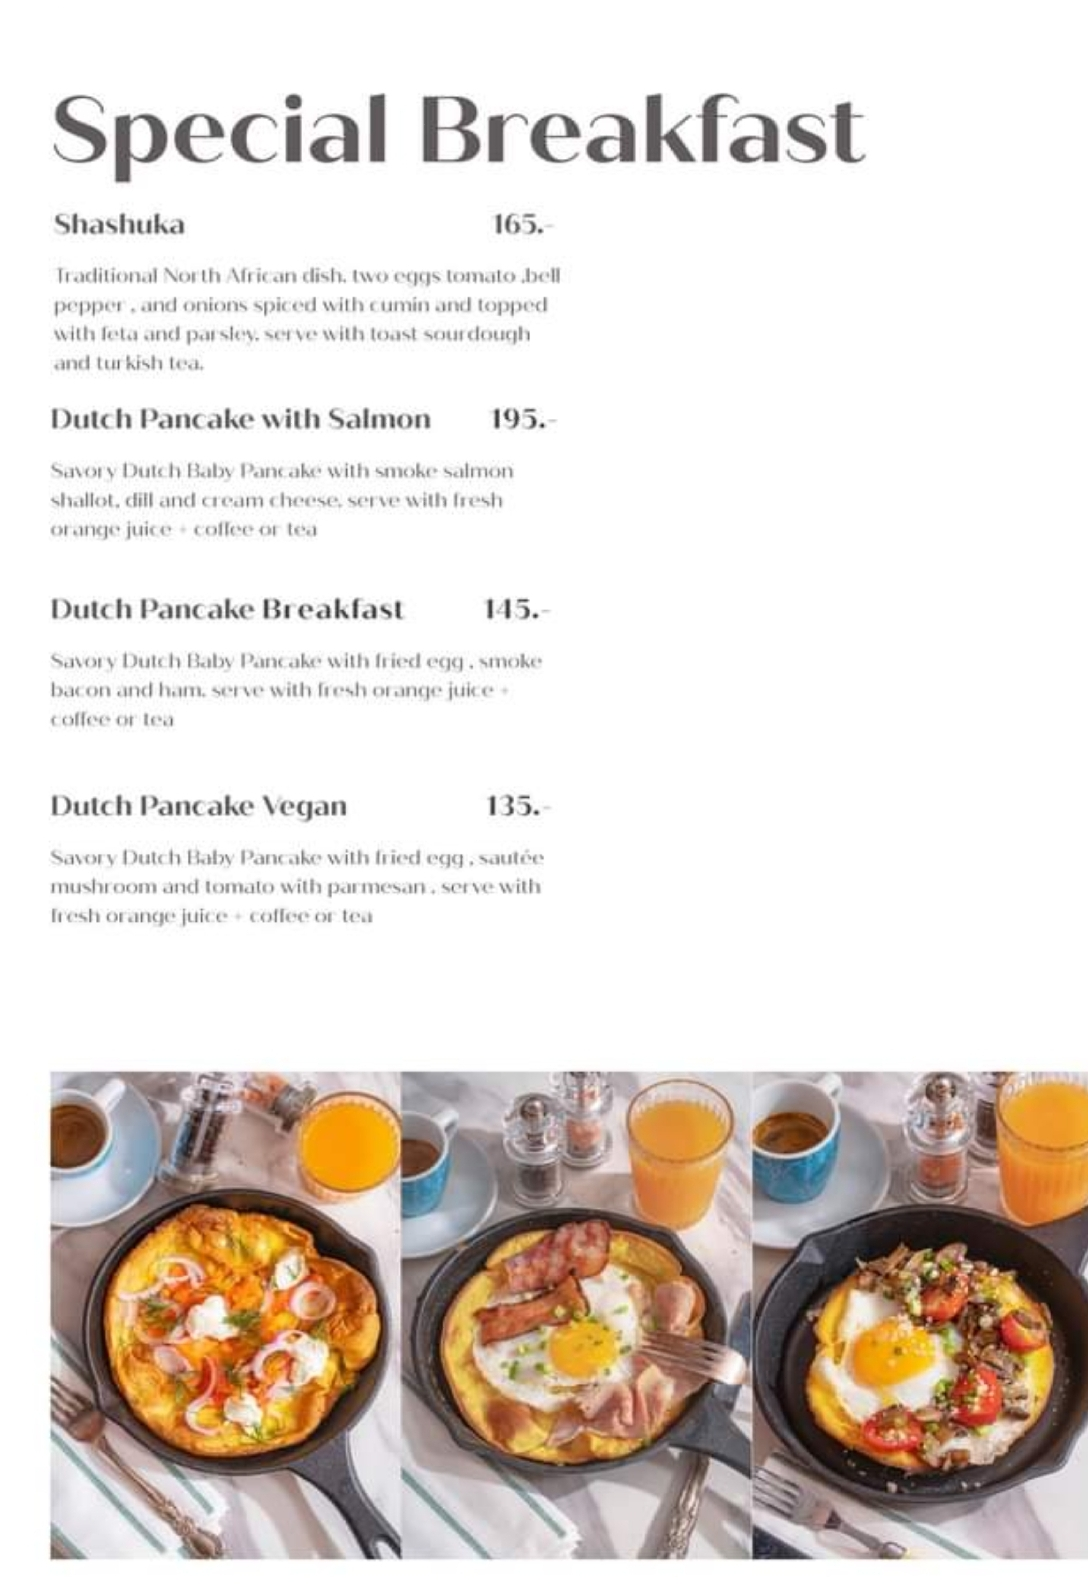 The Best Breakfast in the World Step by Step.: the Full English-screenshot_20210124-191353_chrome-jpg